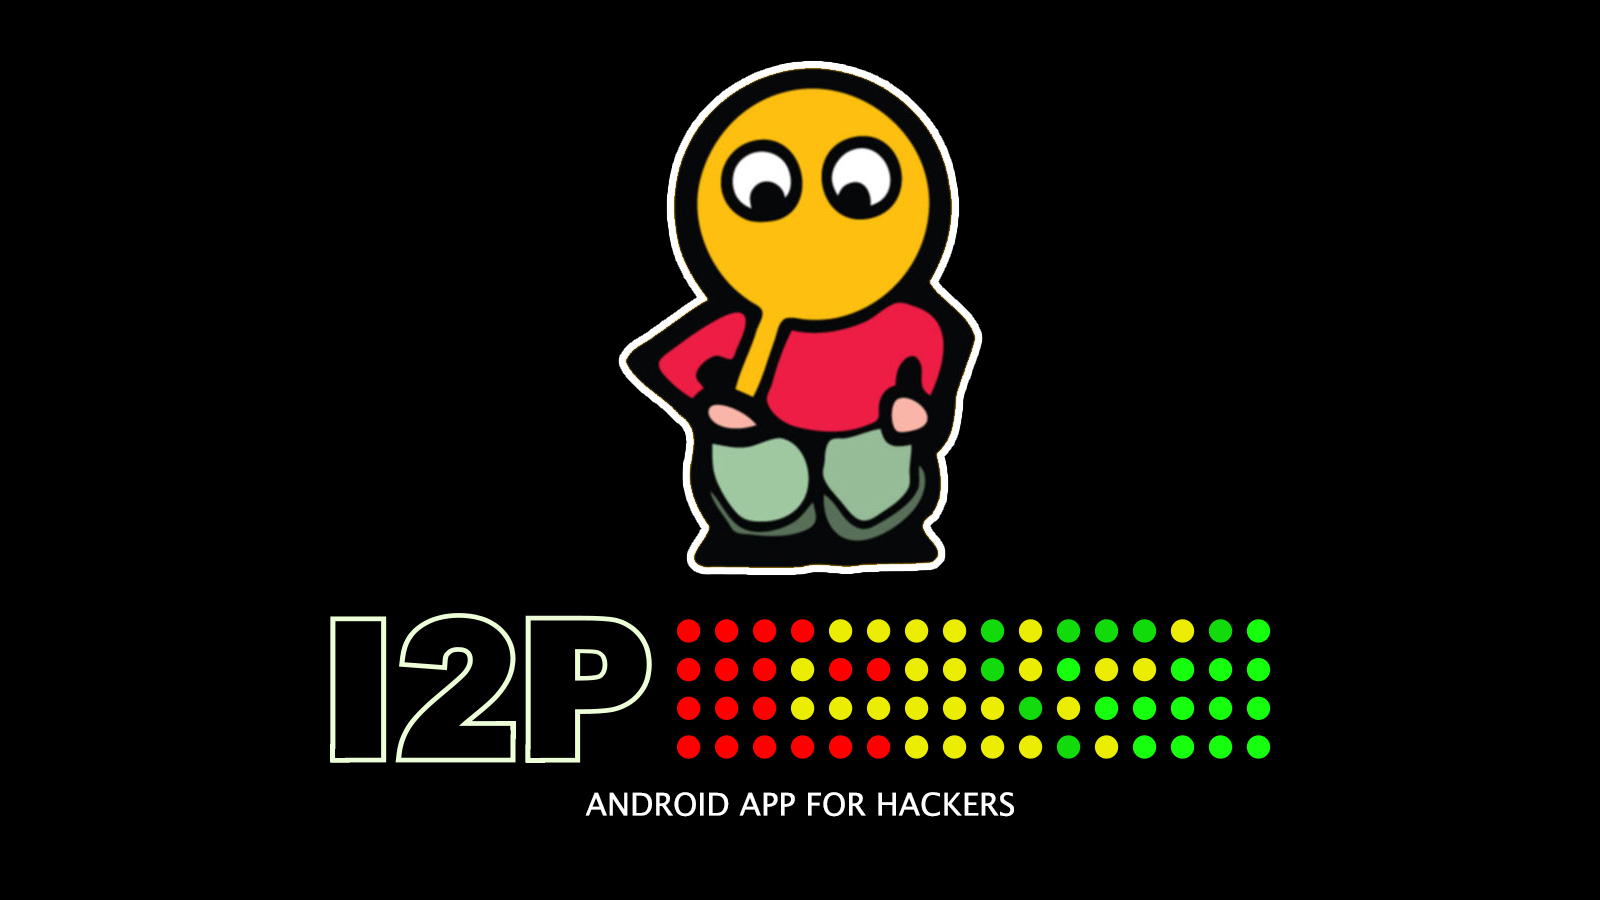 I2P - Android App For Hackers - Effect Hacking